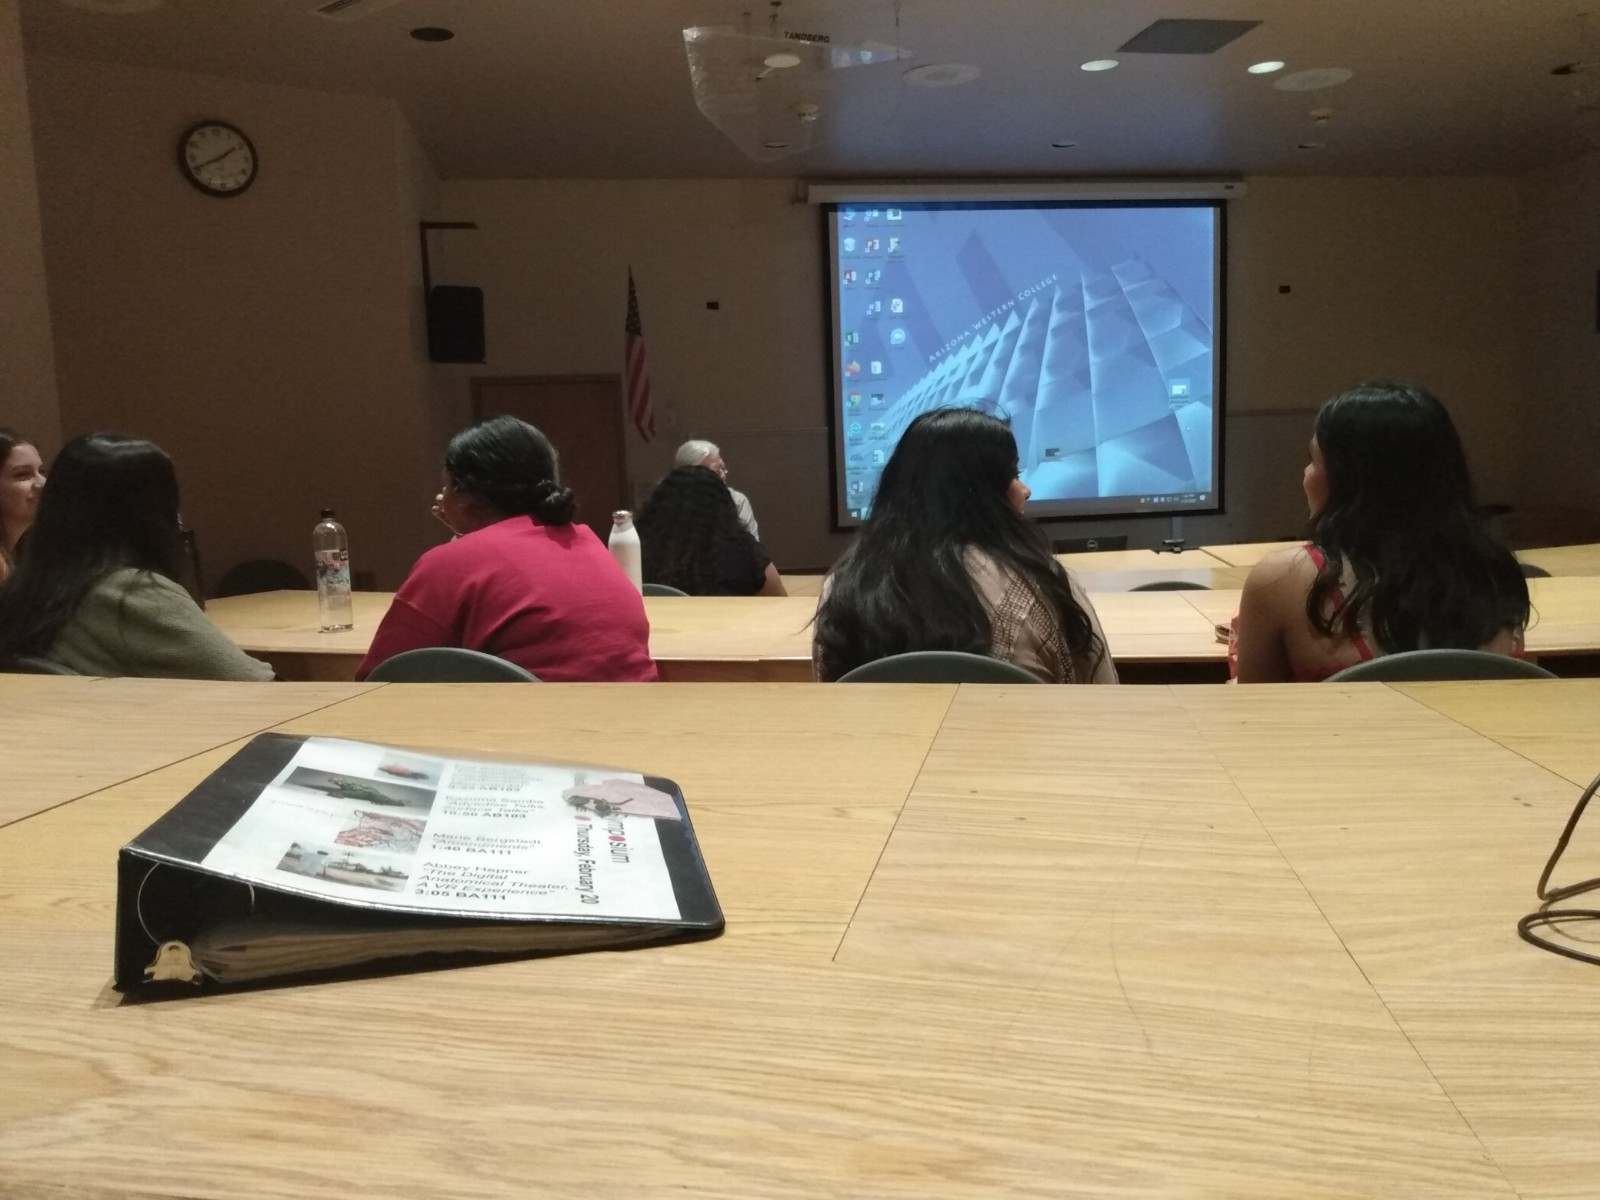 A seat at a table--multiple rows of people in front of a projector